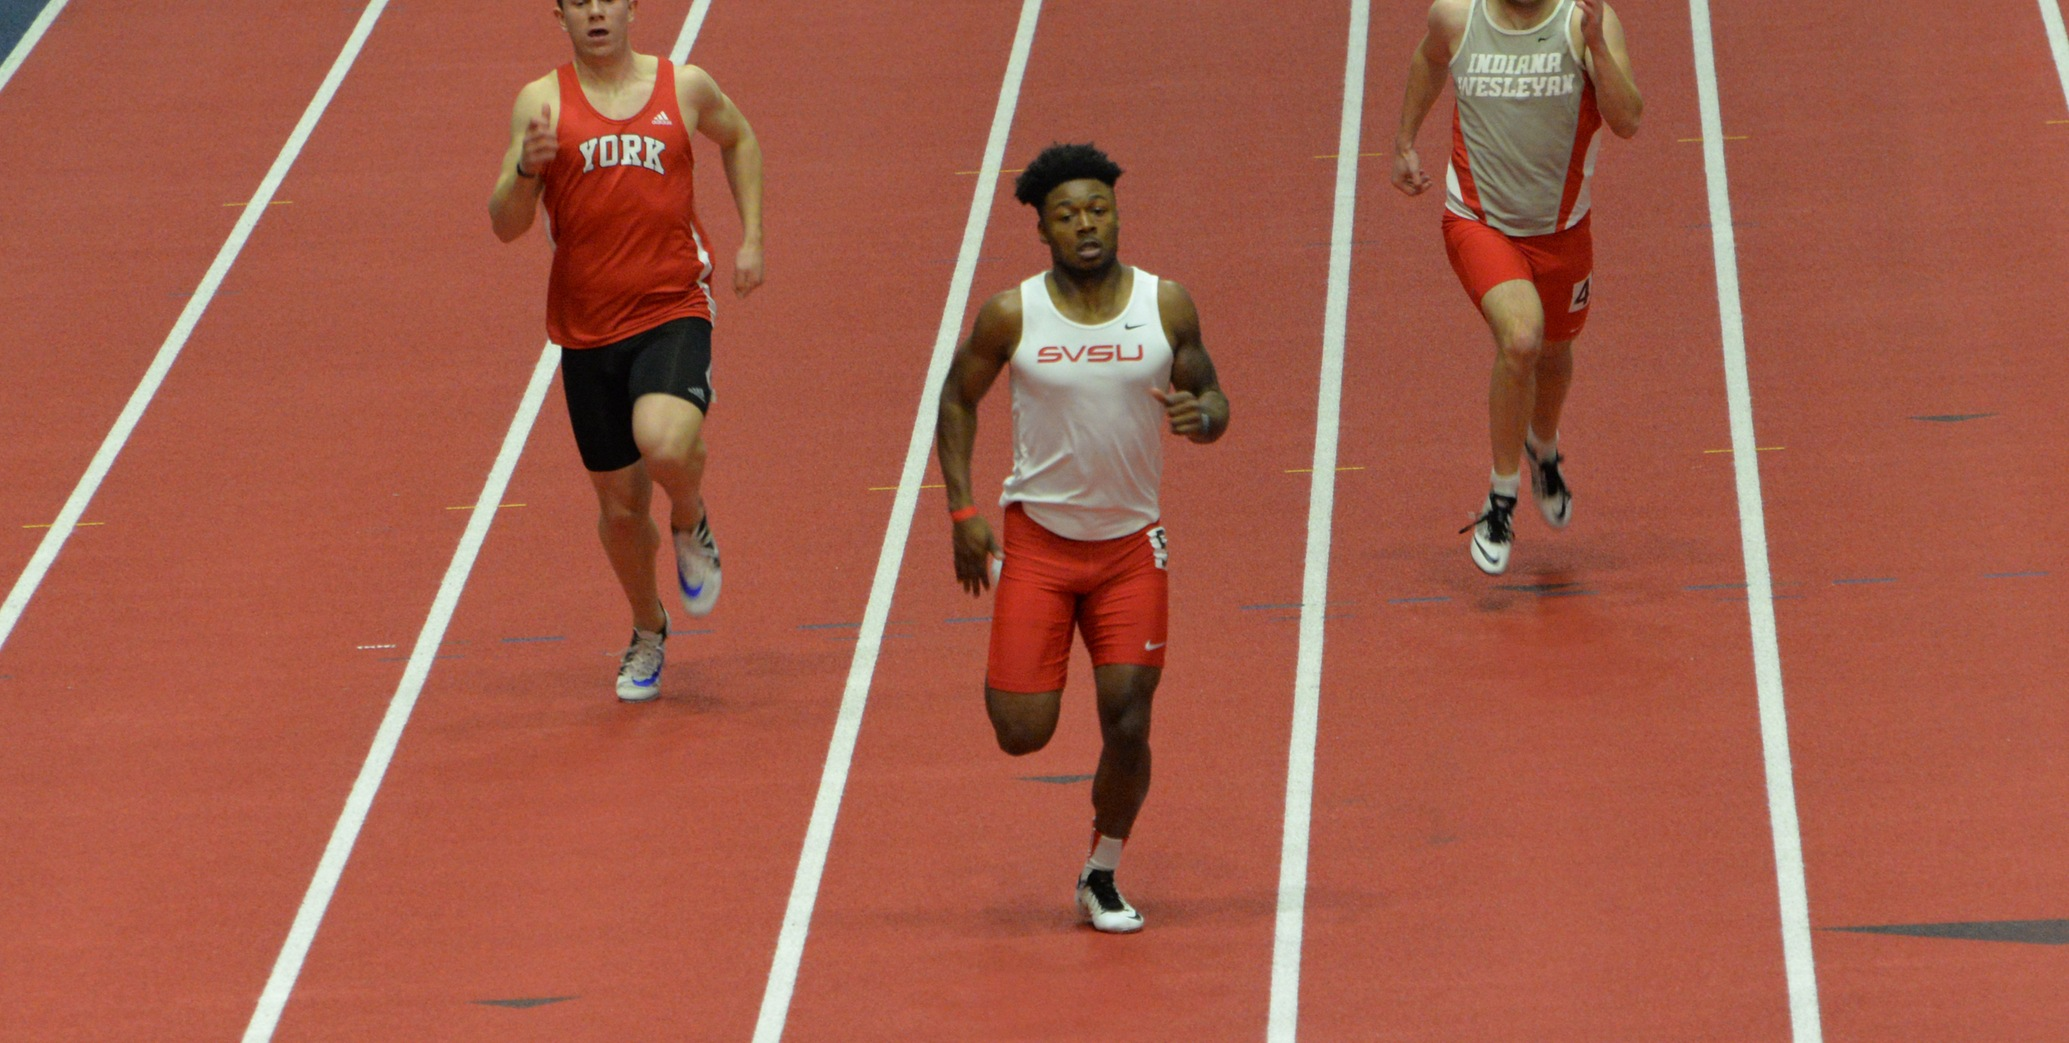 SVSU Track & Field Hosts Day One of Jet's Pizza Invitational